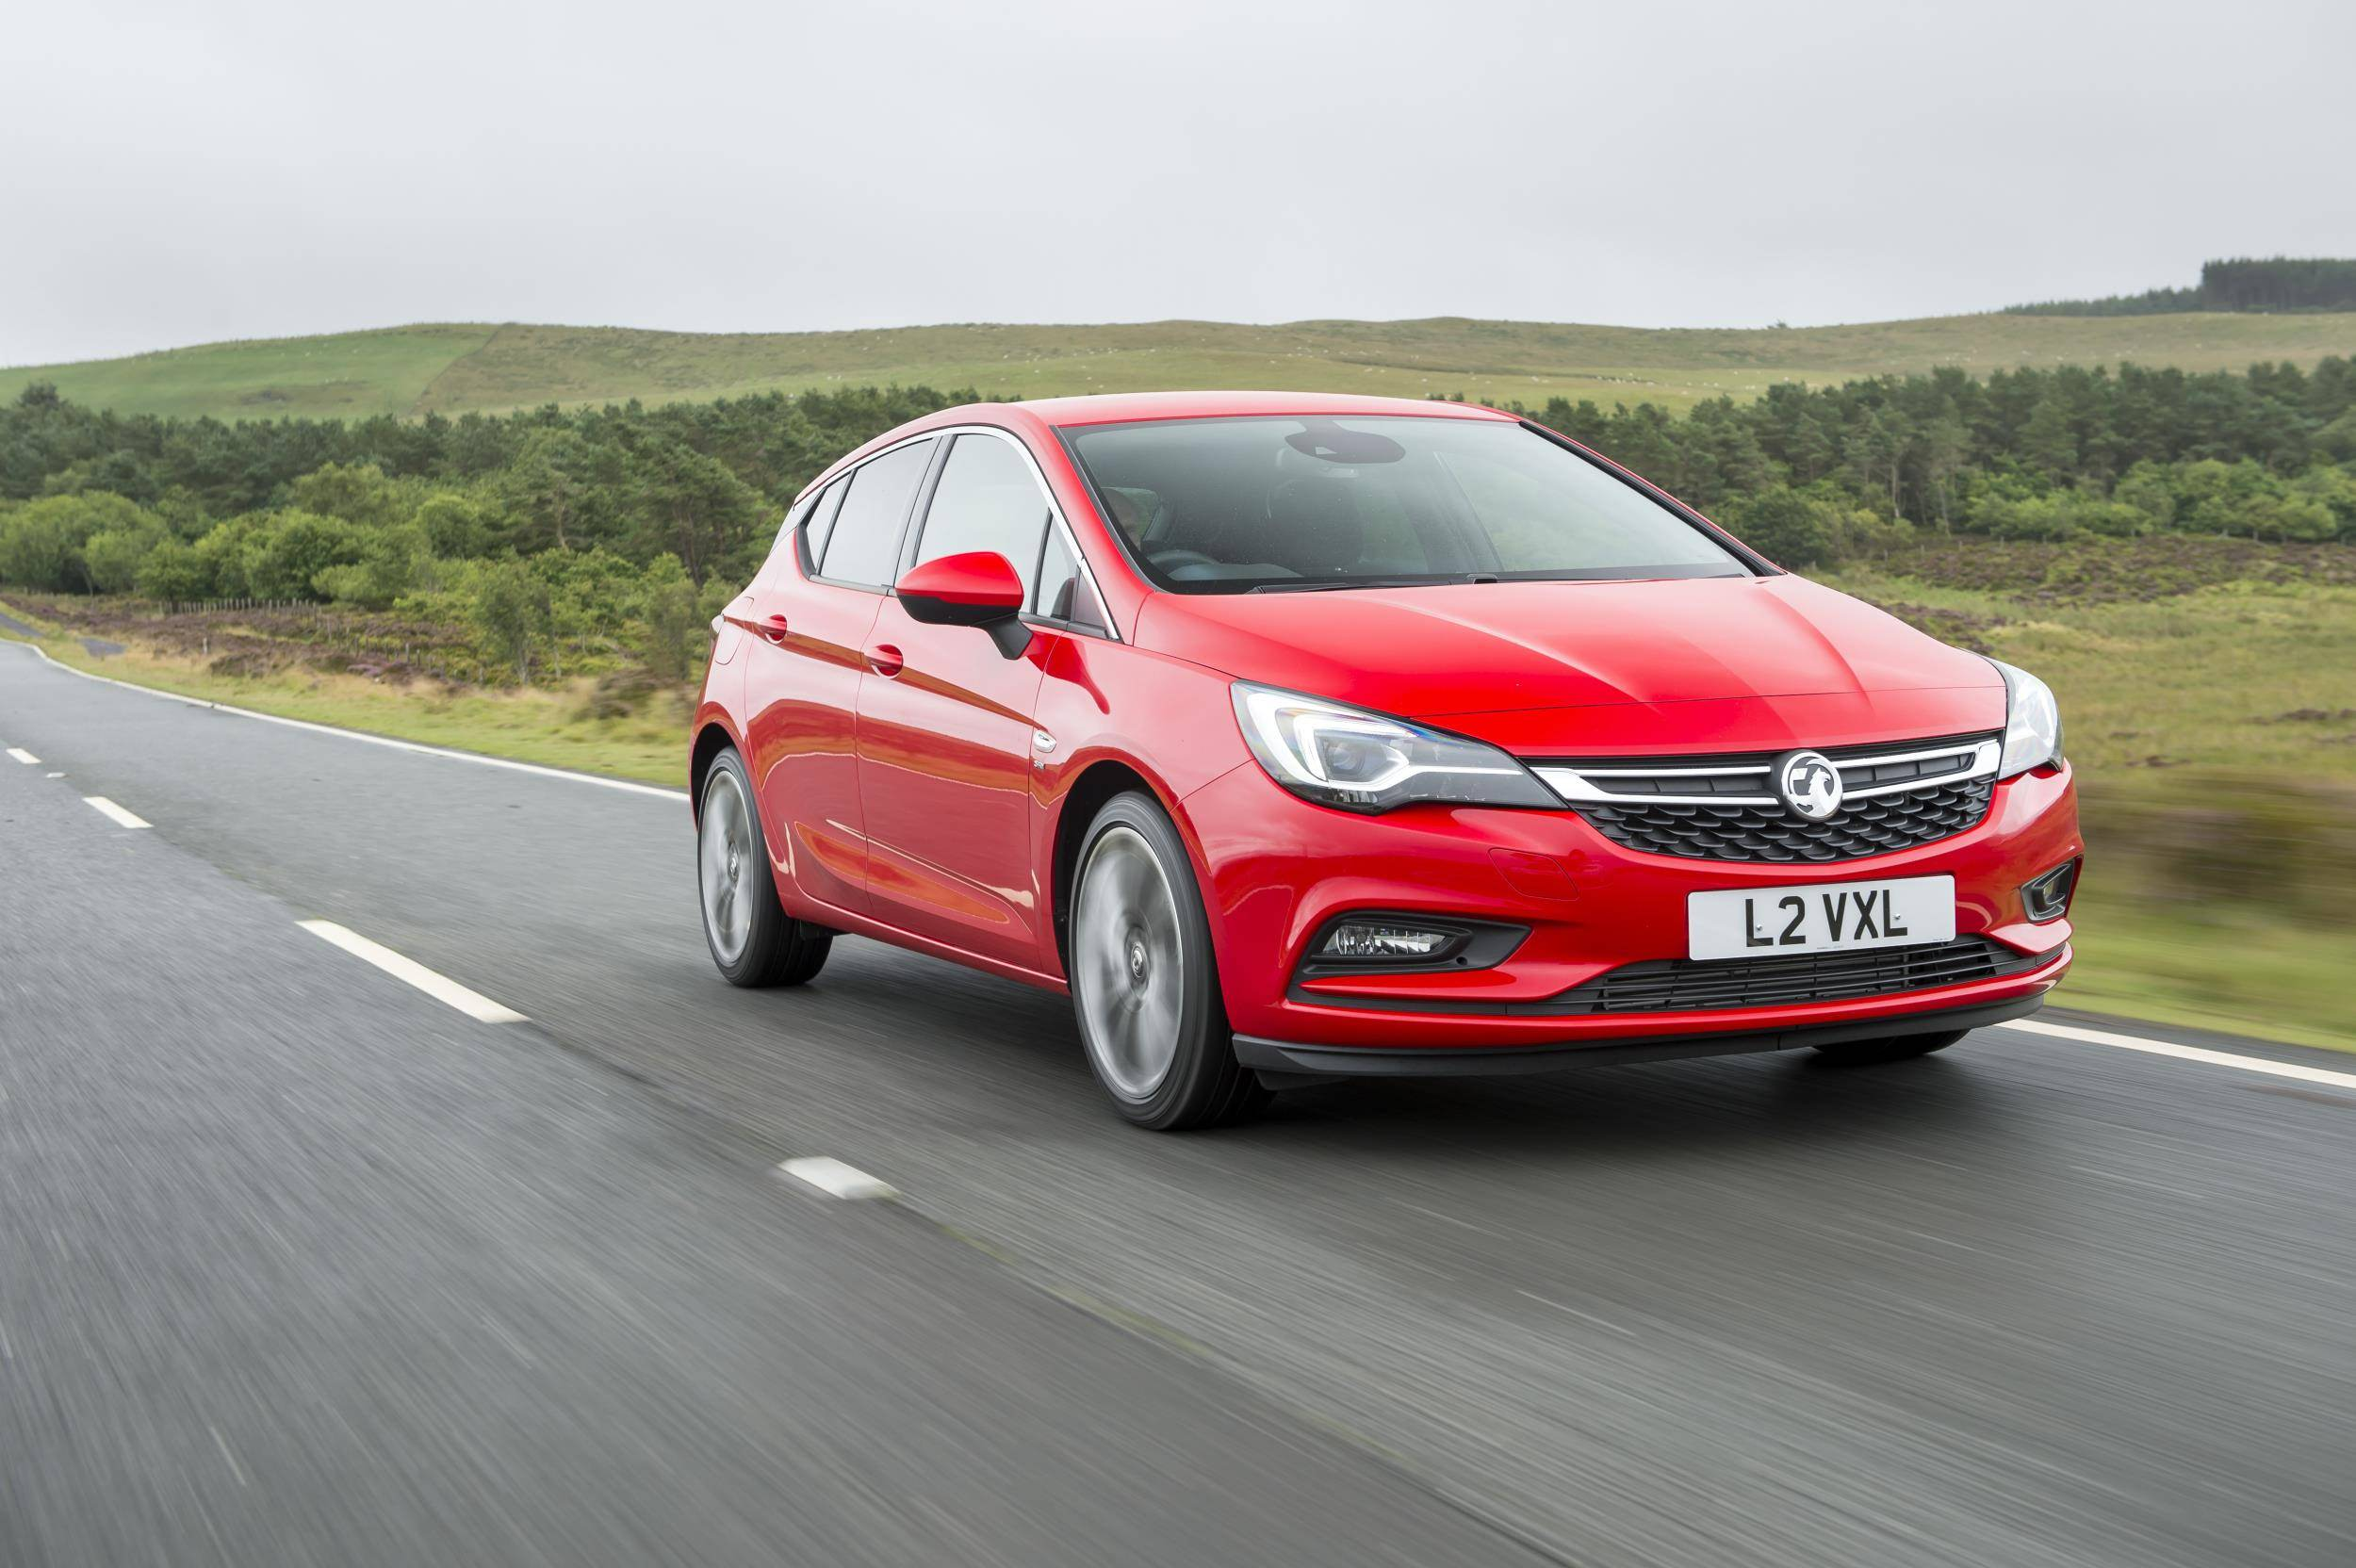 image of a red vauxhall astra car exterior